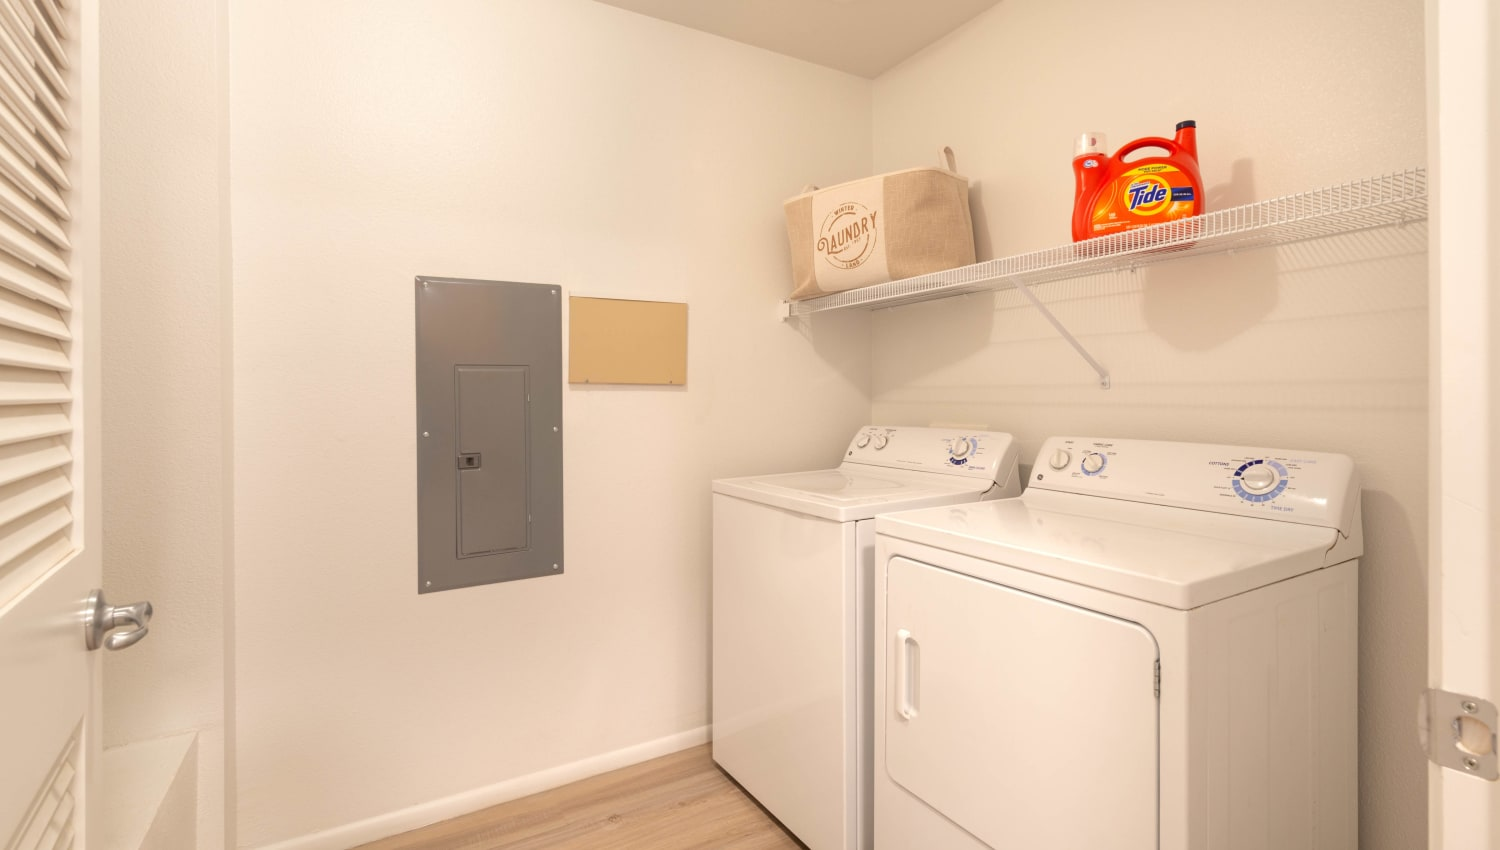 Full-size in-unit washer and dryer in a model apartment at Olympus at Daybreak in South Jordan, Utah